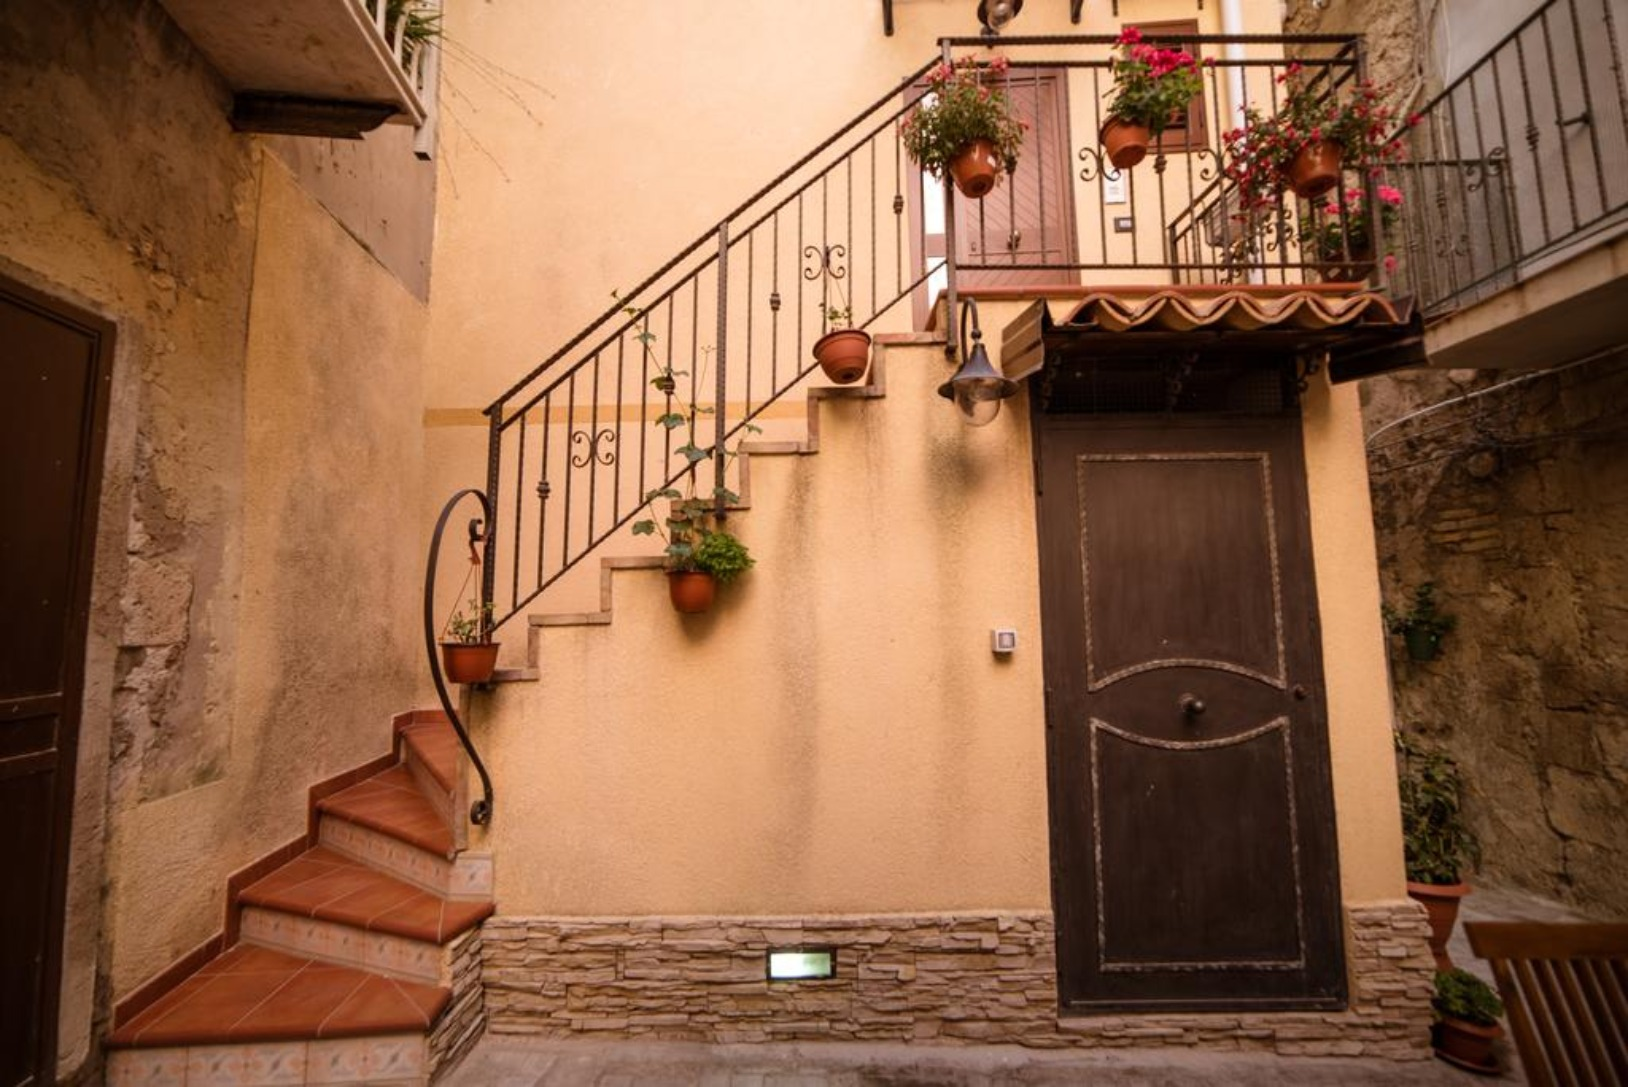 A narrow hallway with graffiti on the side of a building at Marchese Sant' Andrea B&B.